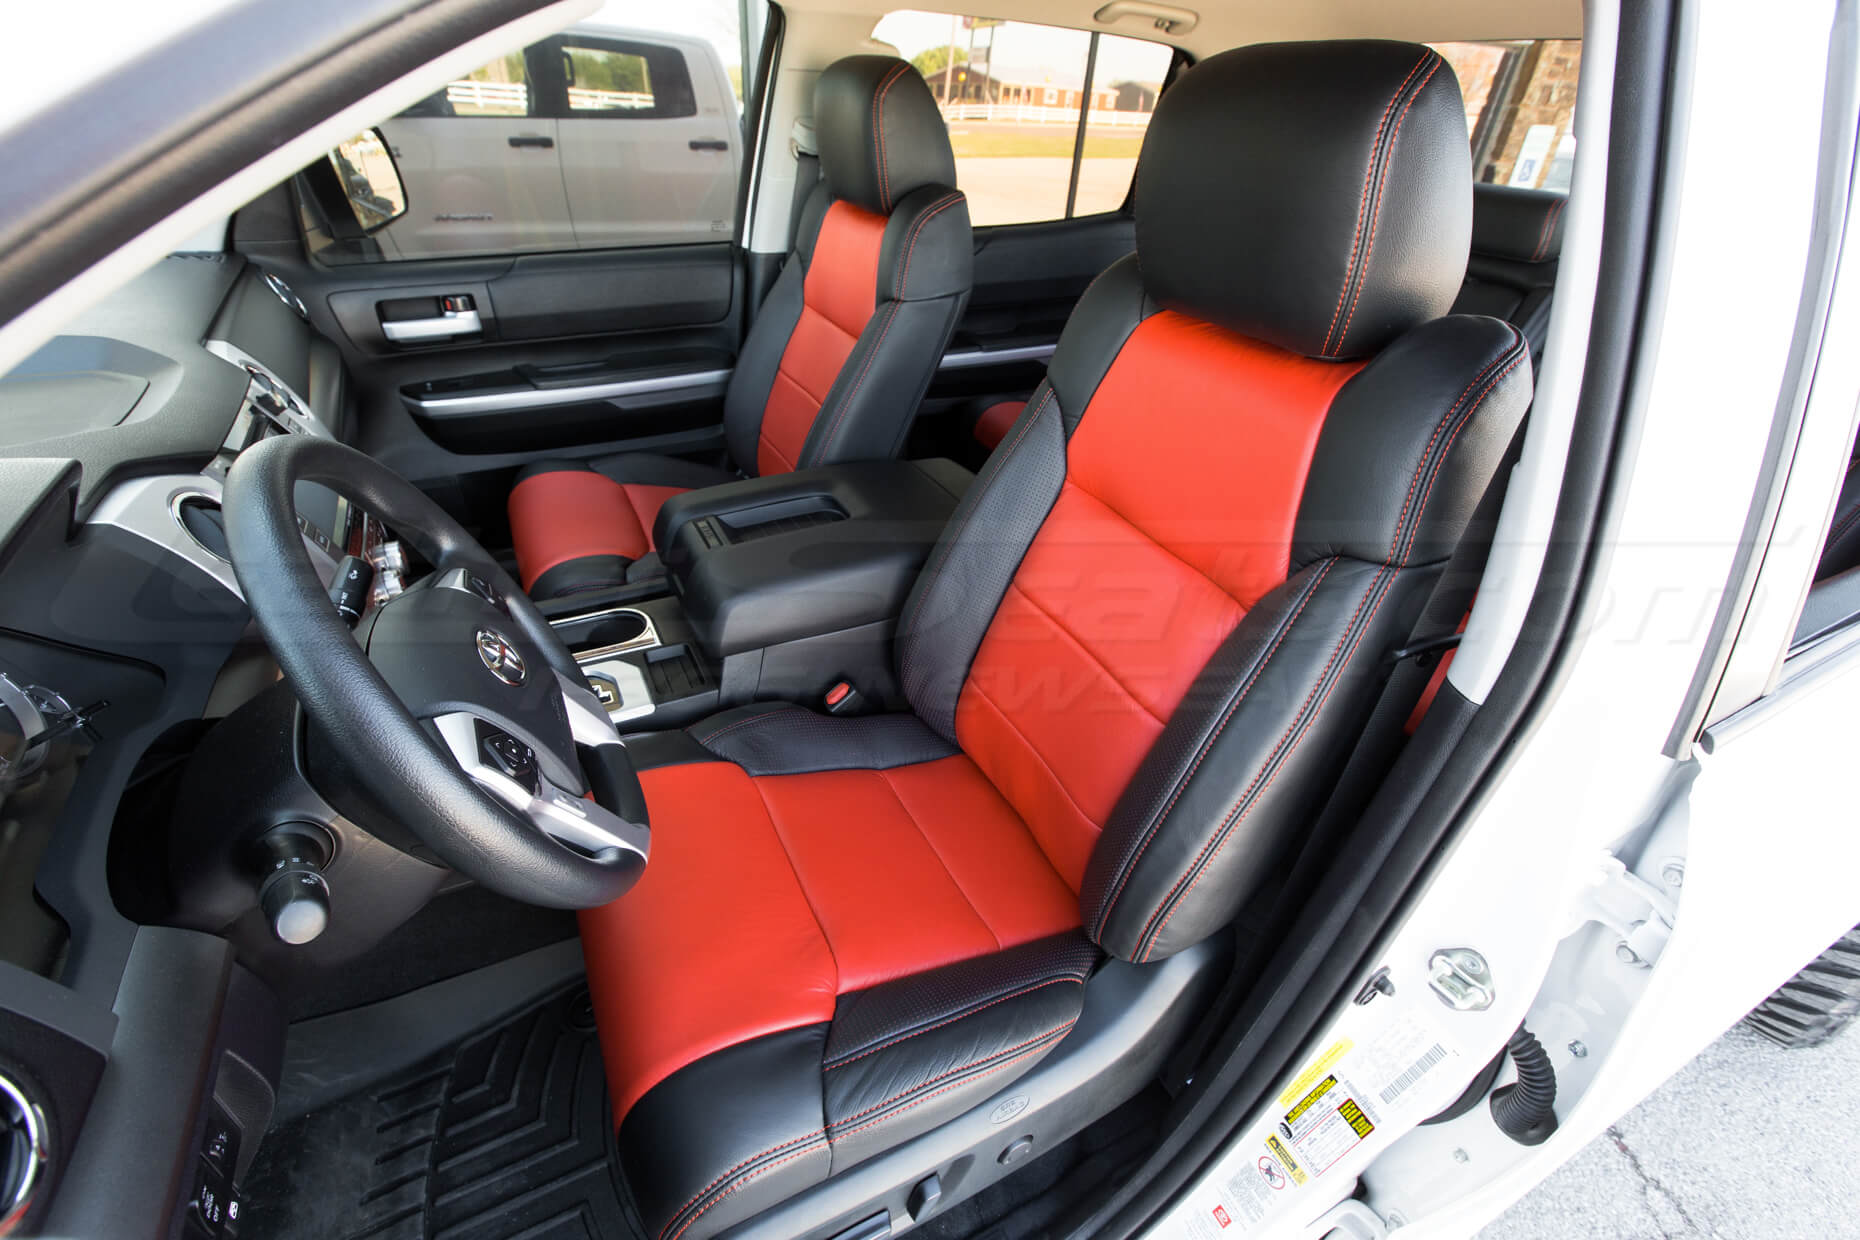 Toyota Tundra installed kit - Black, Bright Red, Piazza red - Front driver seat